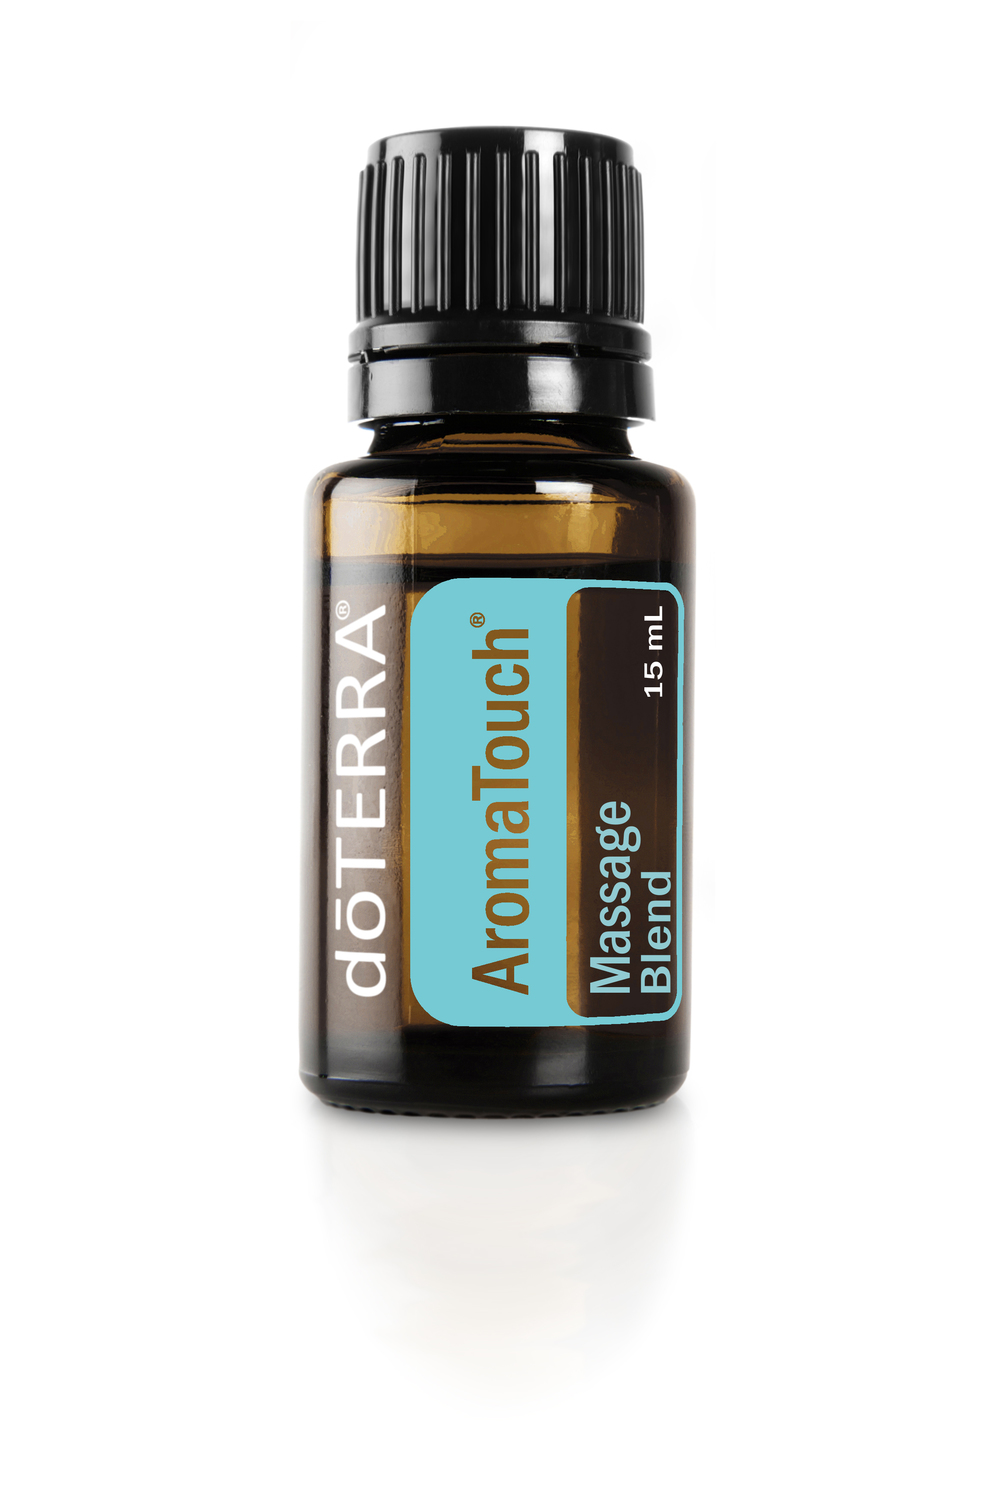 AromaTouch Essential Oils Massage Blend